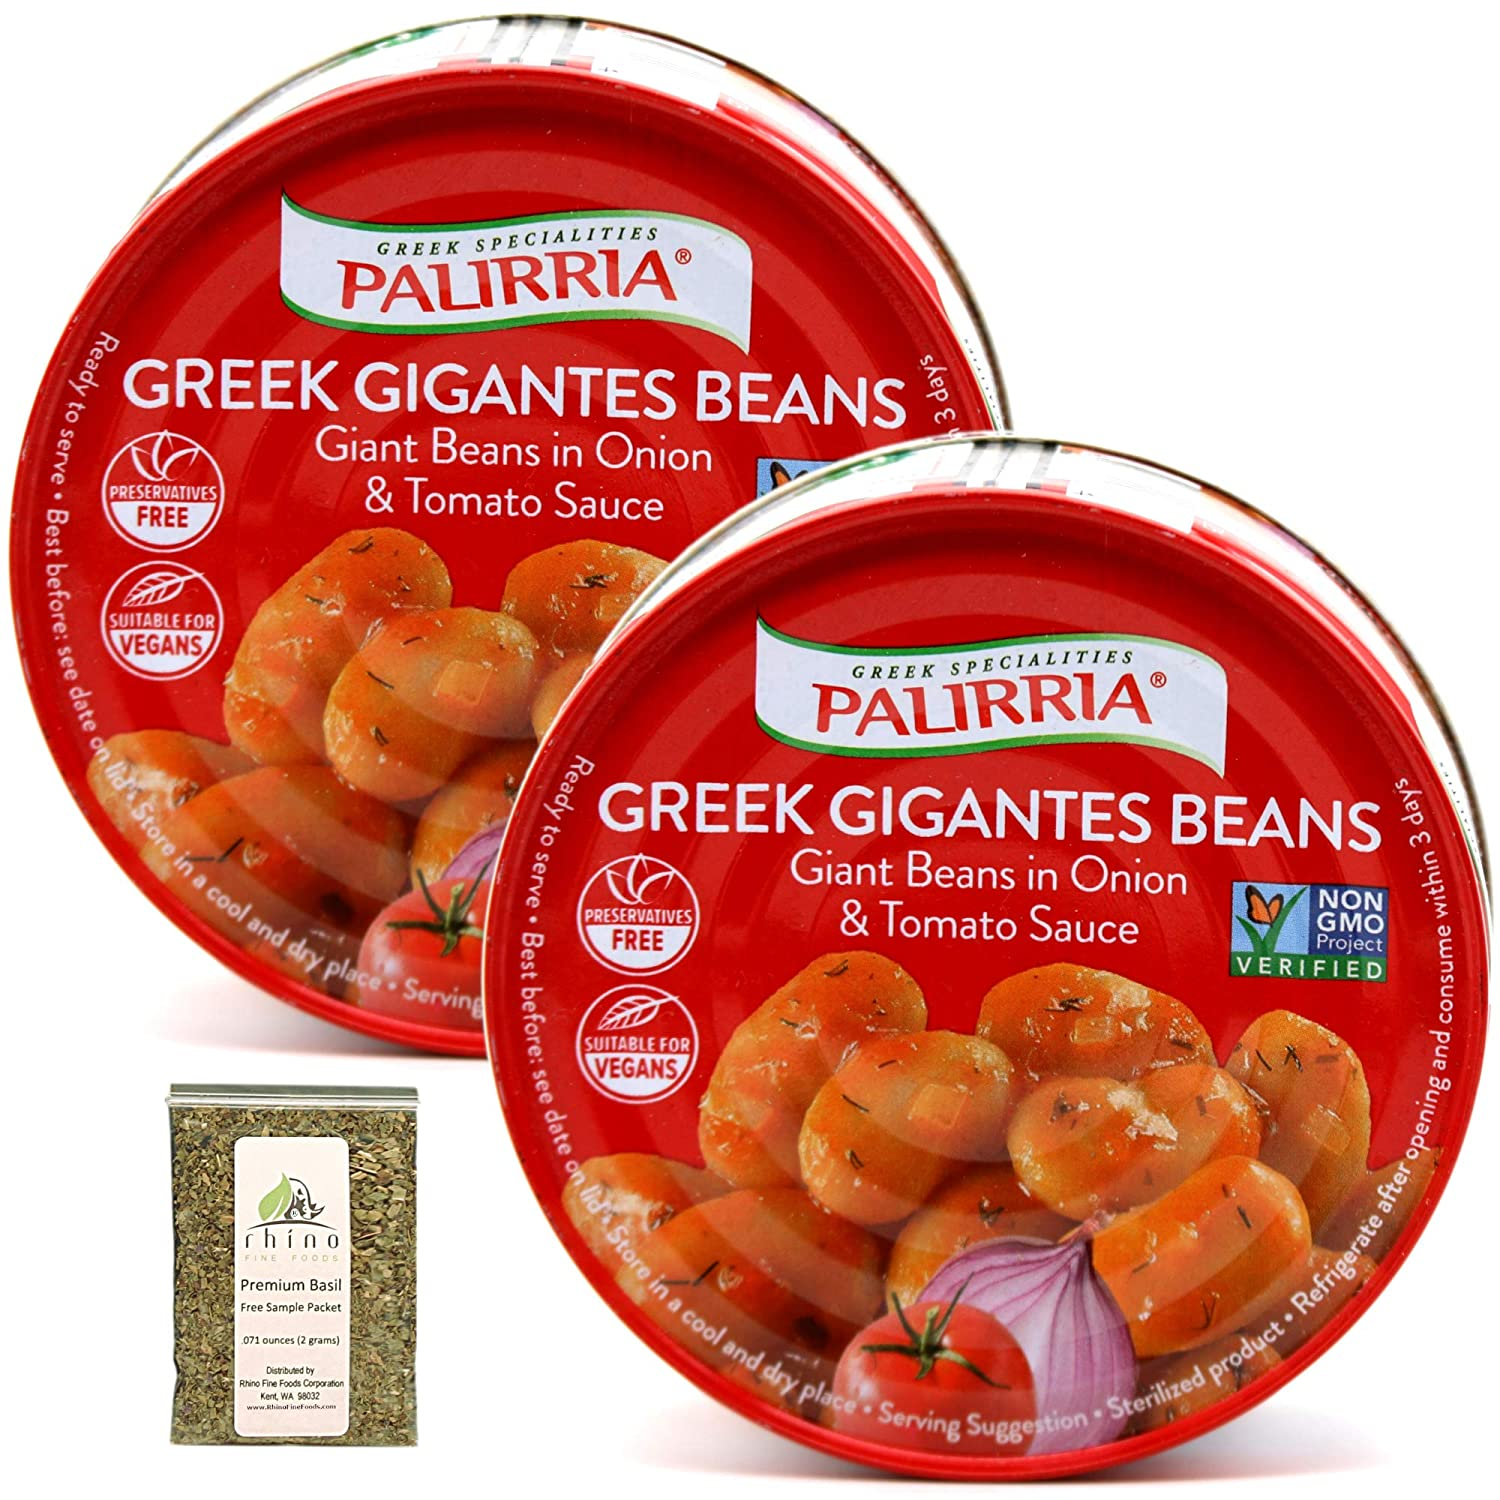 Palirria, Greek Gigantes Beans in Onion & Tomato Sauce (aka Massive Giant Greek Style Baked Beans), Non-GMO, 9.90 oz (Pack of 2) + Includes-Free Premium Basil Leaves from Rhino Fine Foods, .071 oz